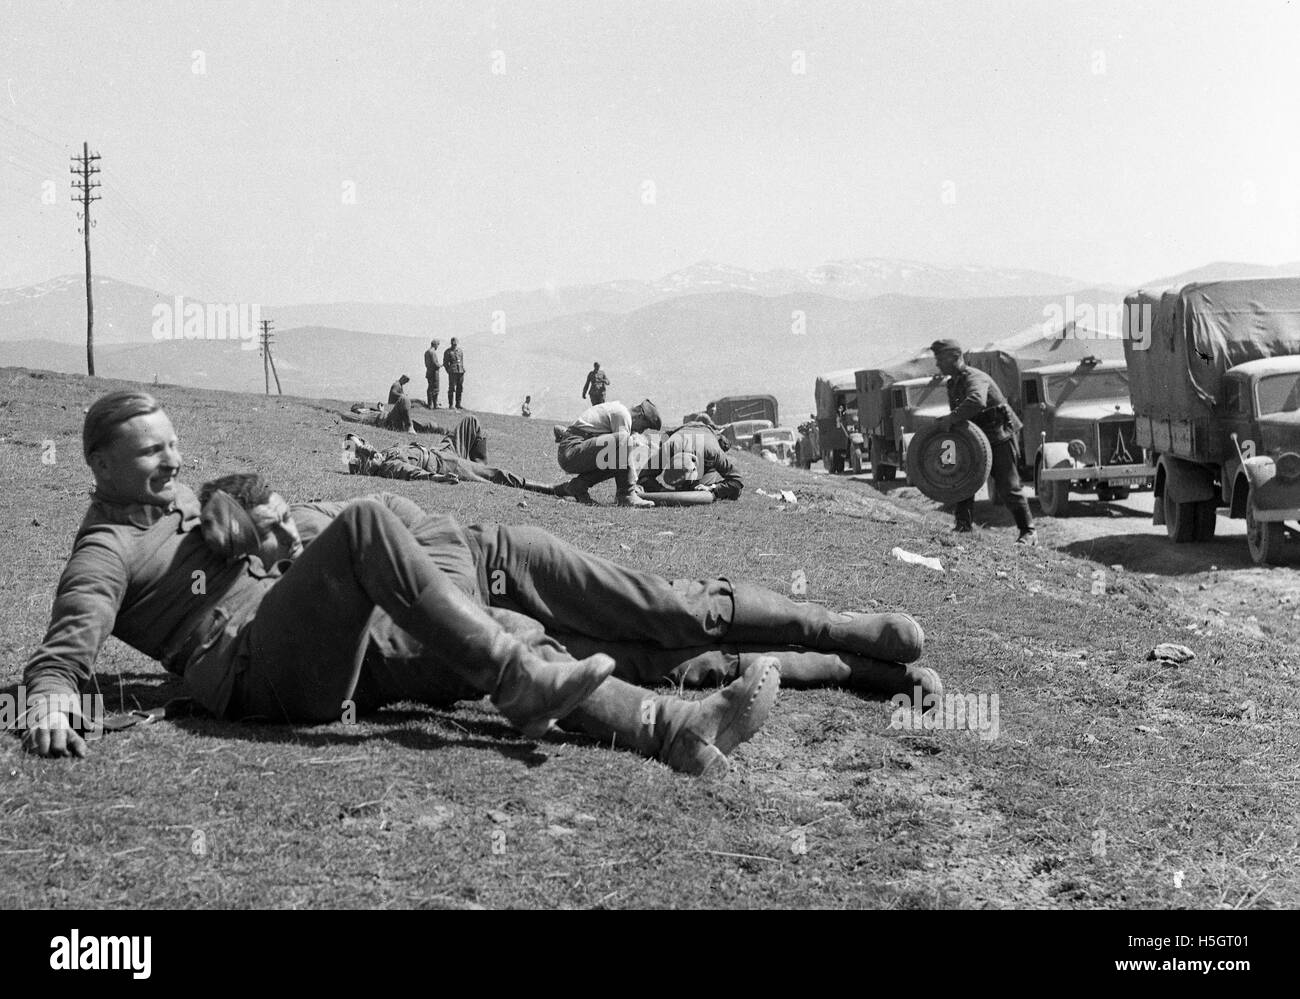 German soldiers relaxing and repairing tyre puncture in the Ardennes region France during World War Two - Stock Image